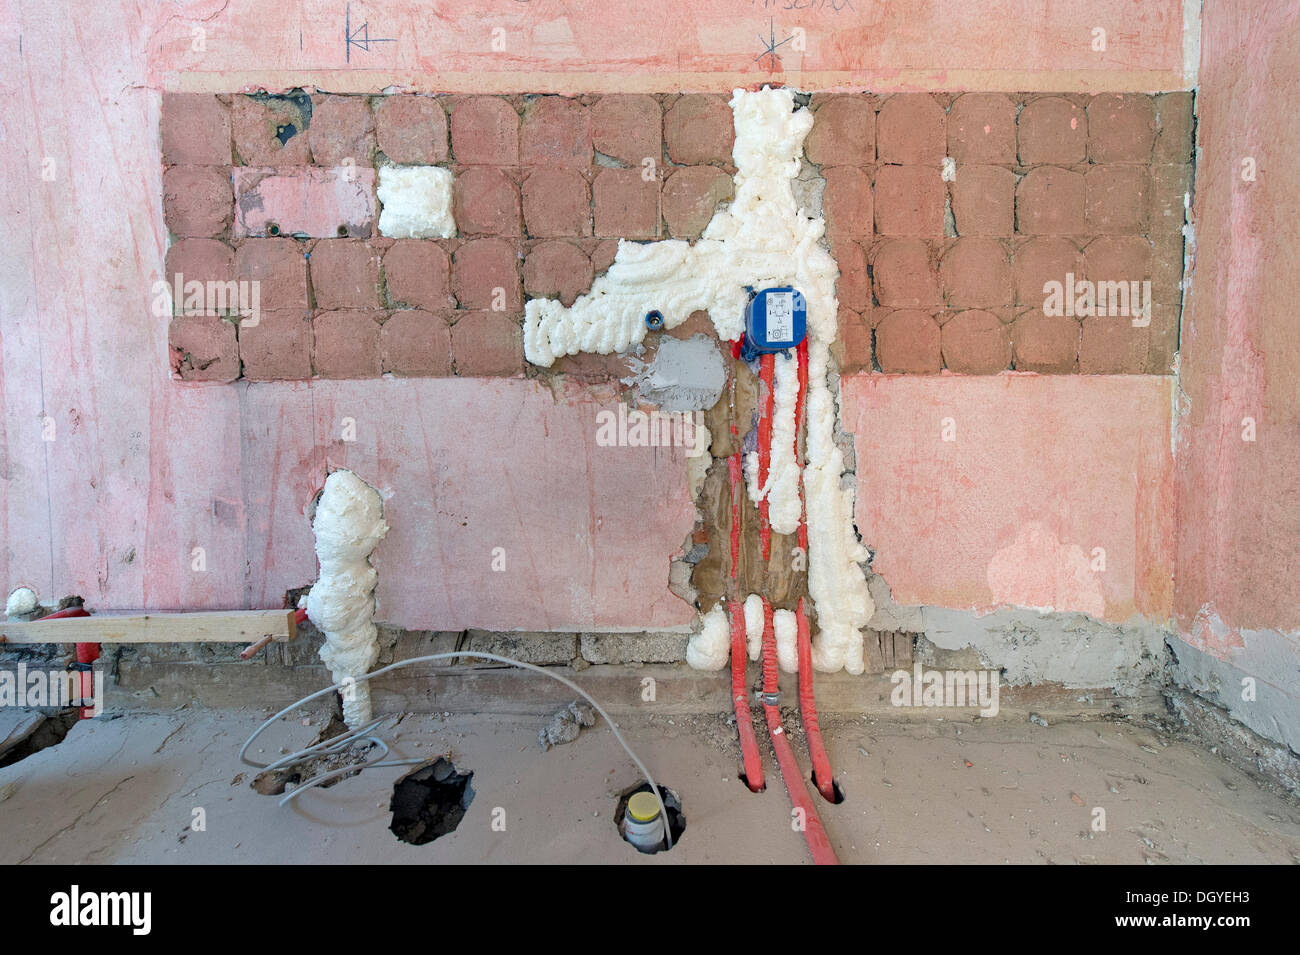 Wall cavities filled with foam insulation, installations for a bathroom, renovation of an old building, Stuttgart - Stock Image